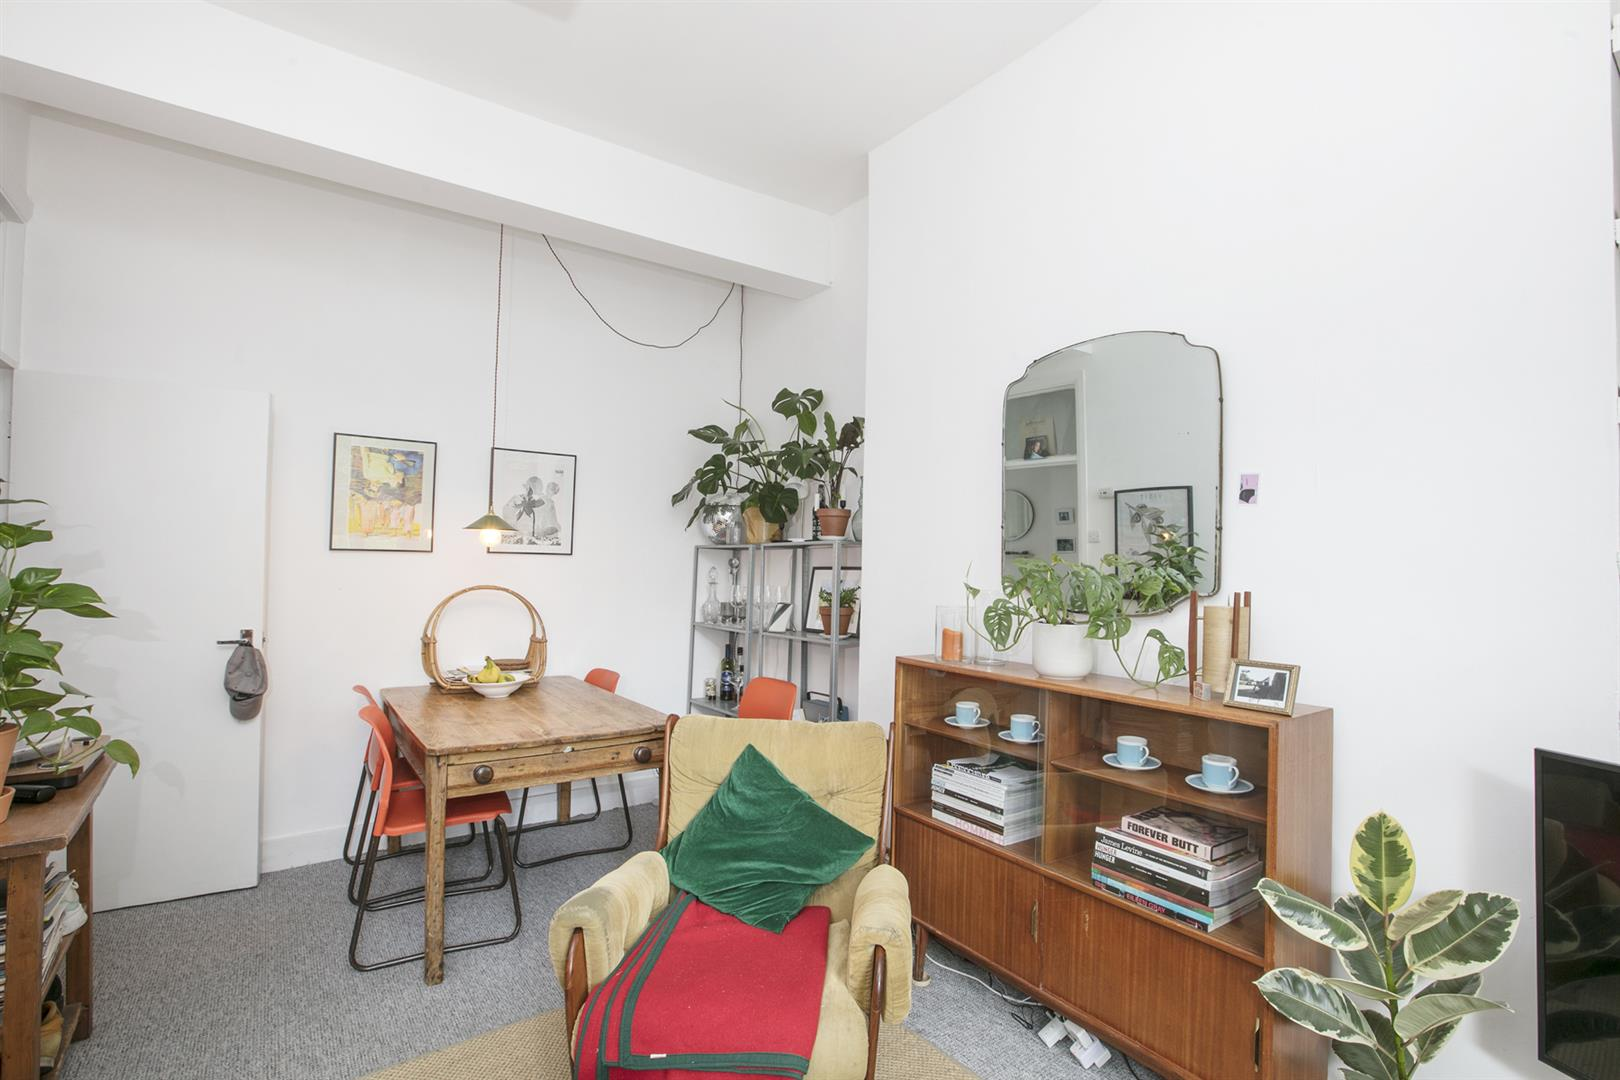 Flat - Conversion Sale Agreed in Talfourd Road, London 643 view5